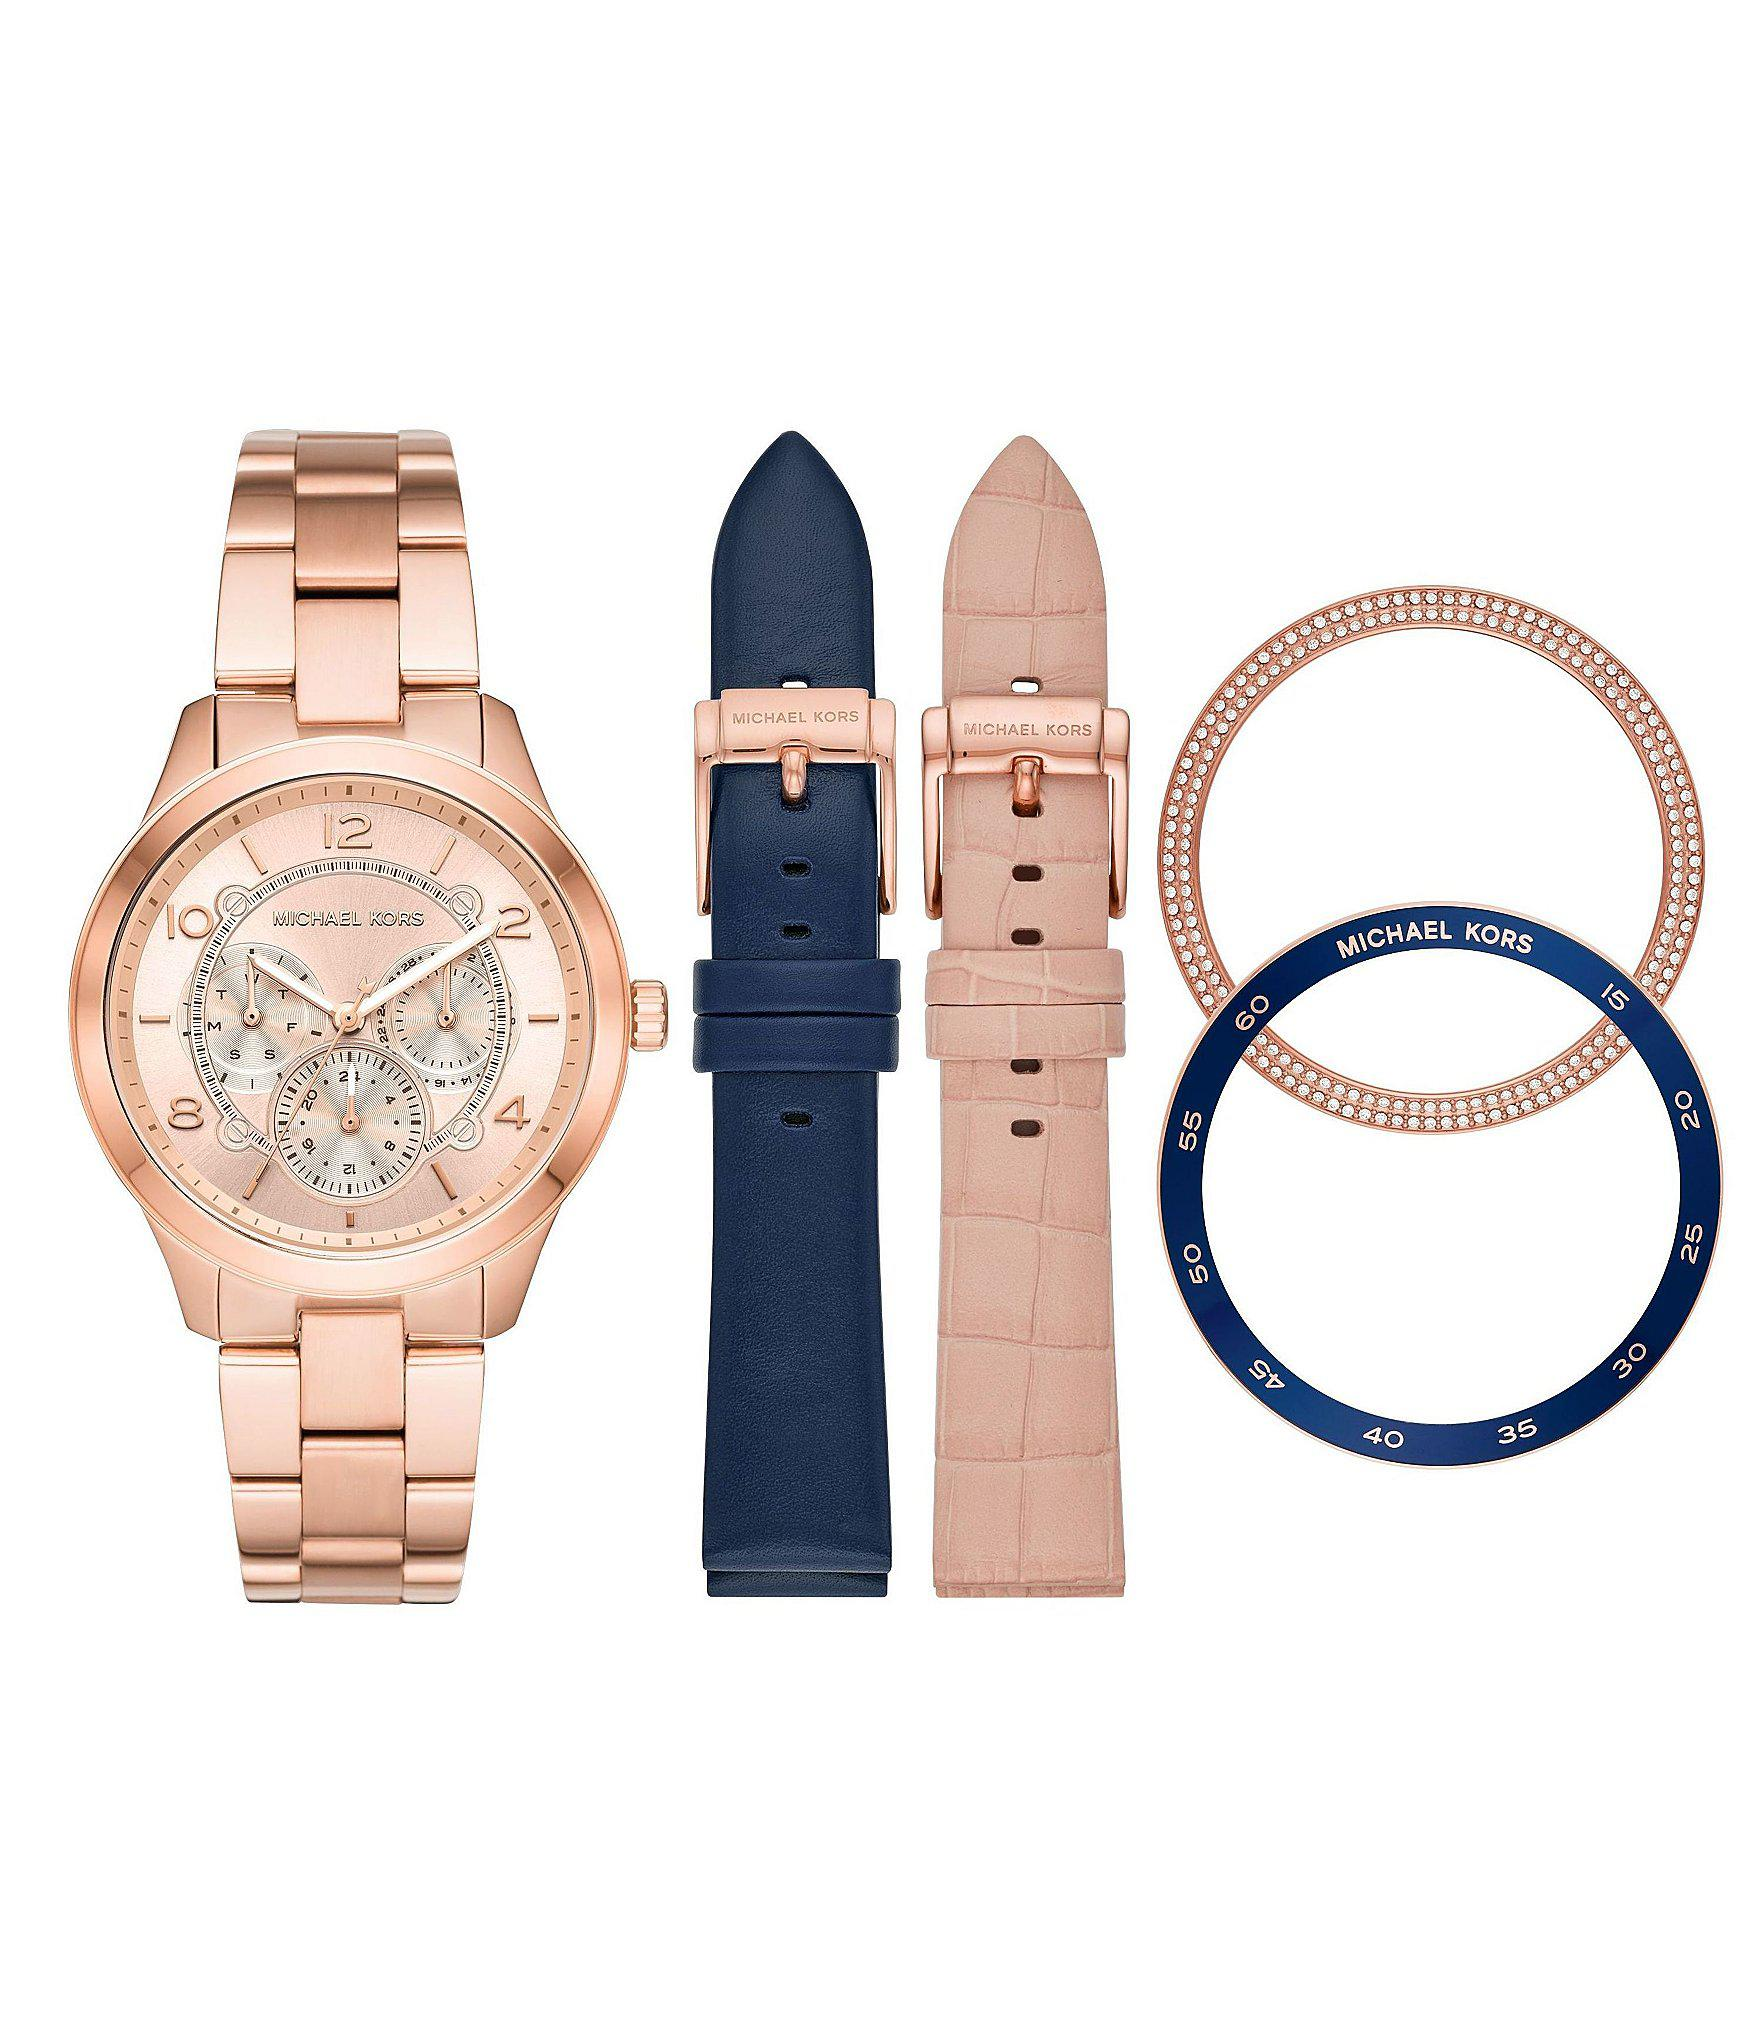 5686f01c5868 Michael Kors - Multicolor Runway Rose Gold-tone And Leather Interchangeable  Watch Set - Lyst. View fullscreen